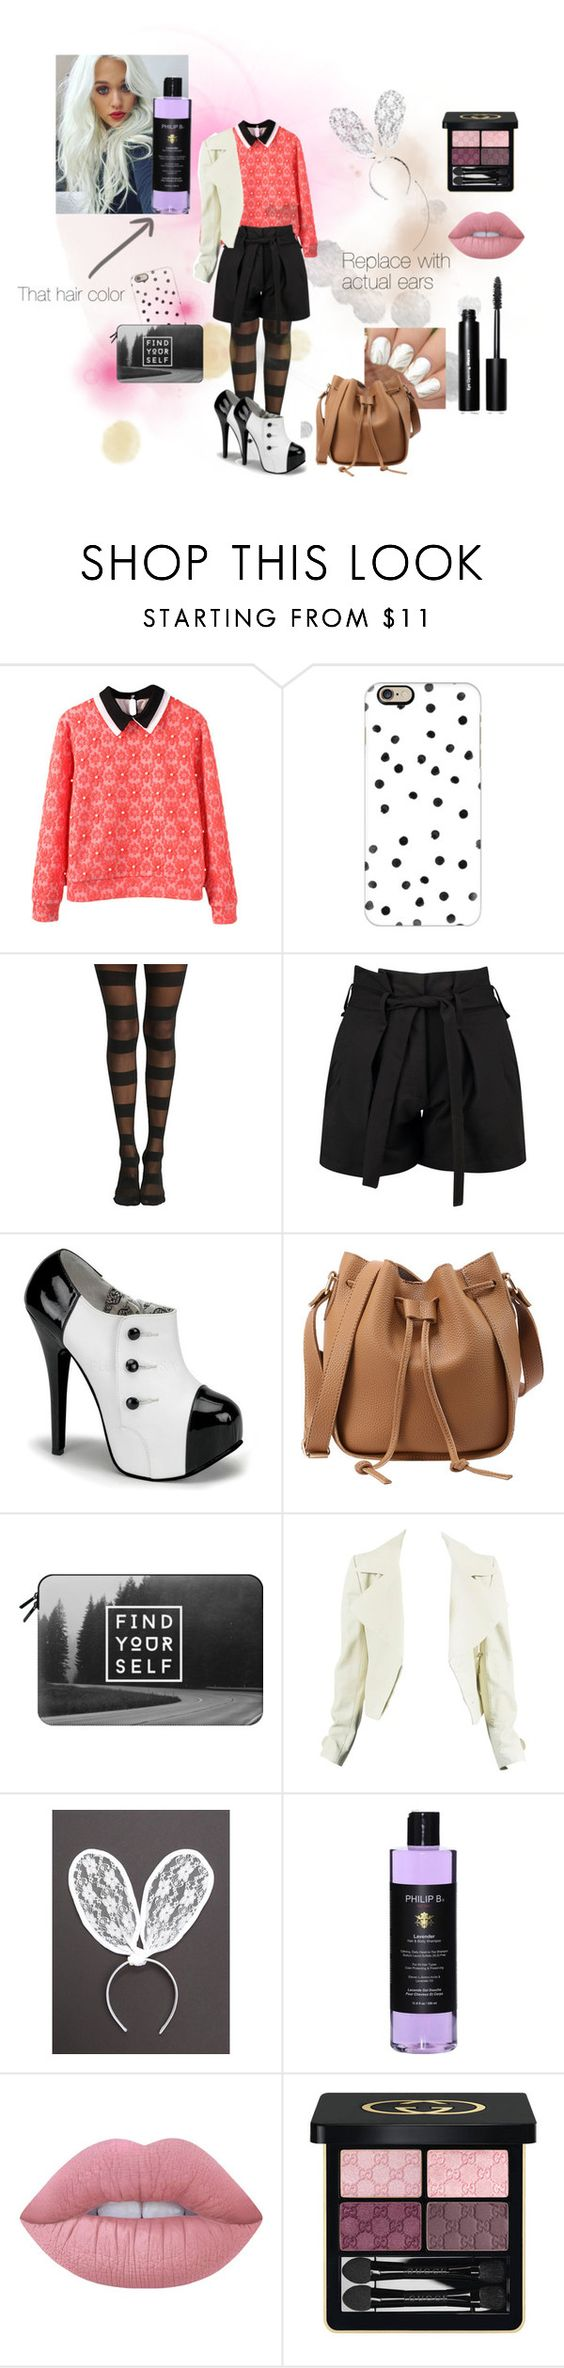 """""""Kat outfit from Wattpad story"""" by micaj on Polyvore featuring Casetify, Boohoo, Philip B, Lime Crime, Gucci and Bobbi Brown Cosmetics"""